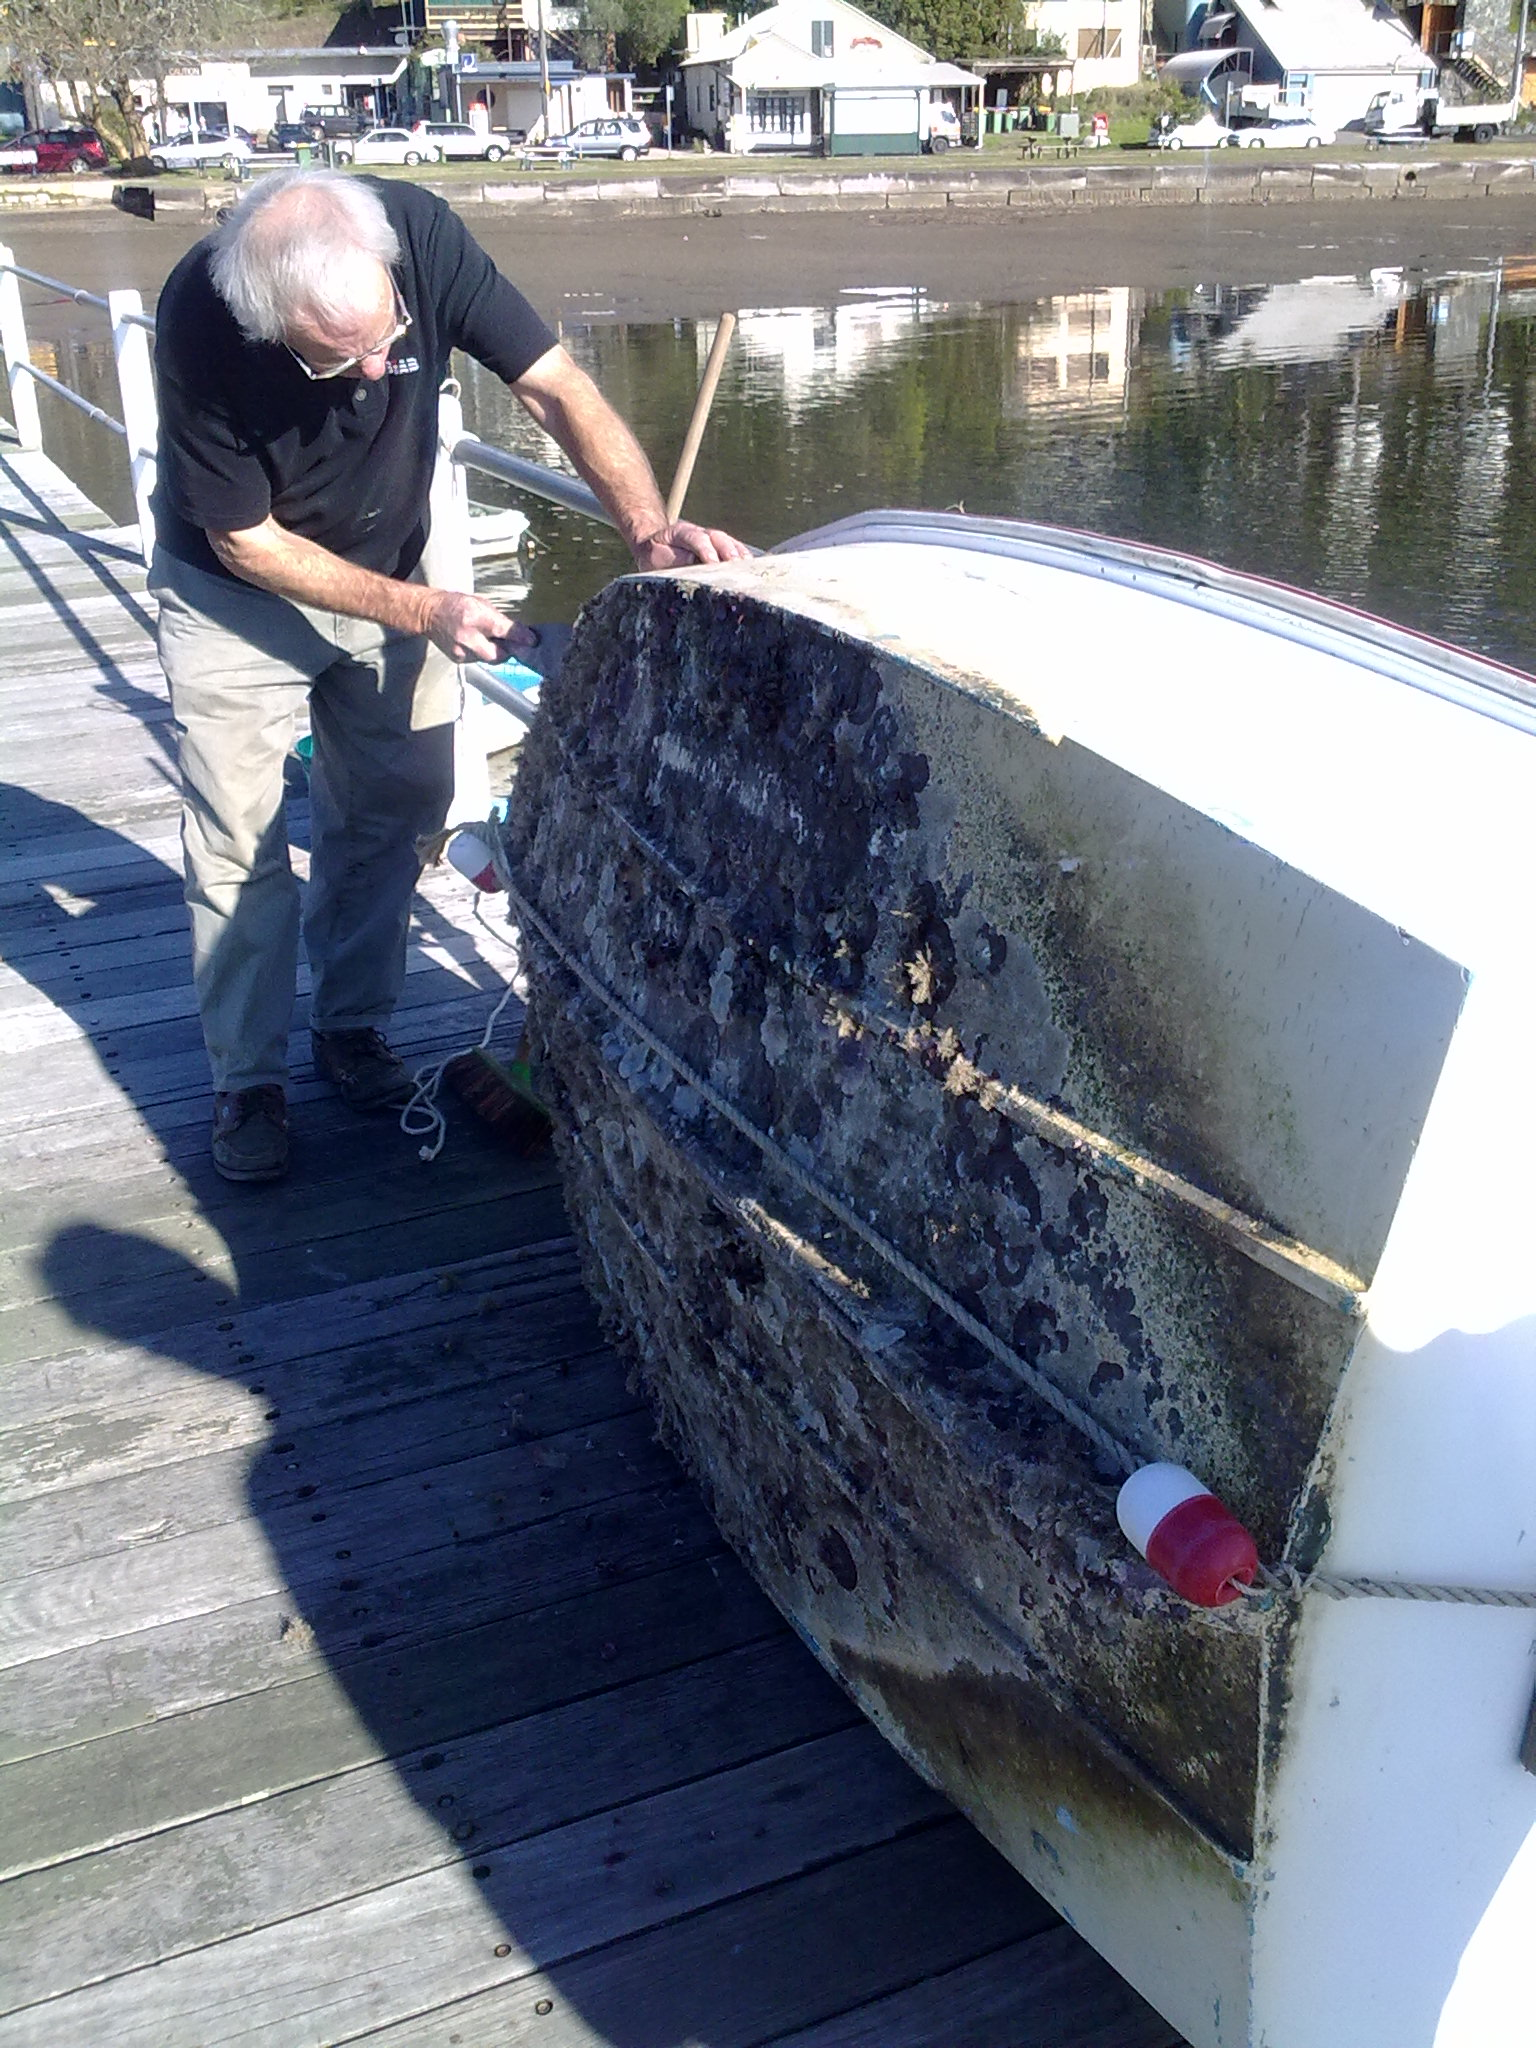 File:Boat fouling organisms (4875278100).jpg - Wikimedia Commons